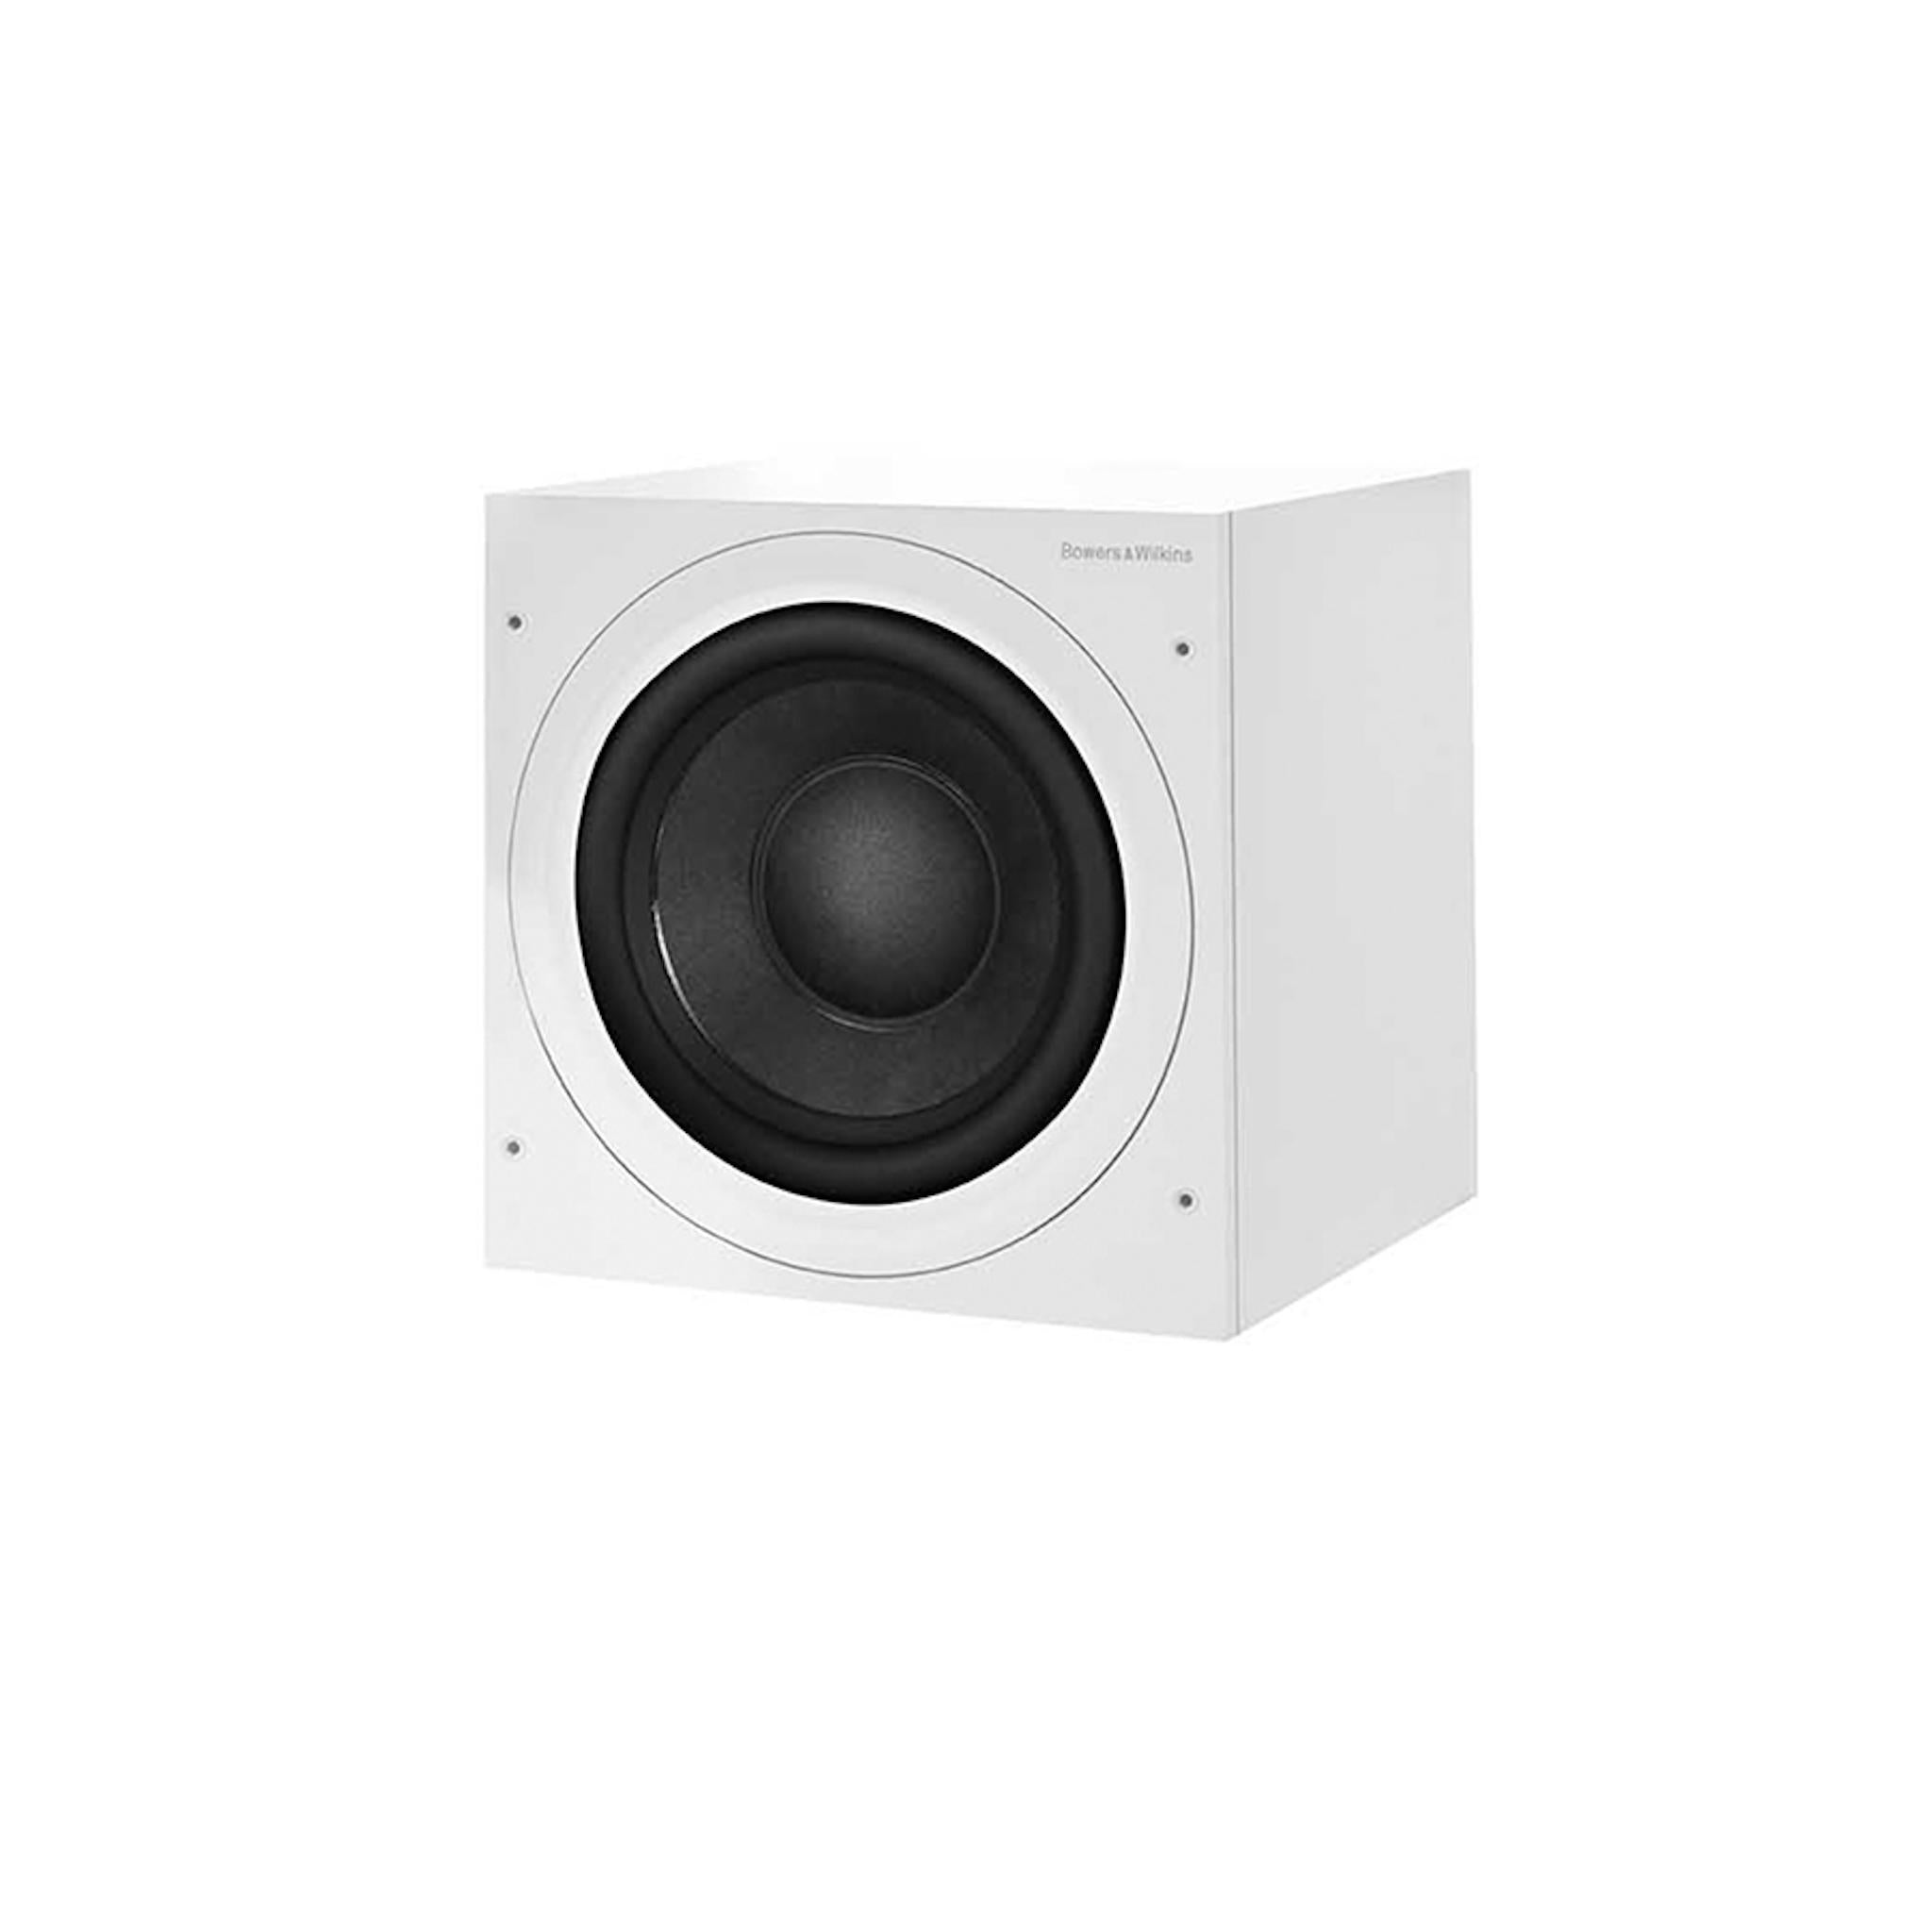 Bowers & Wilkins ASW610 - Powered Subwoofer